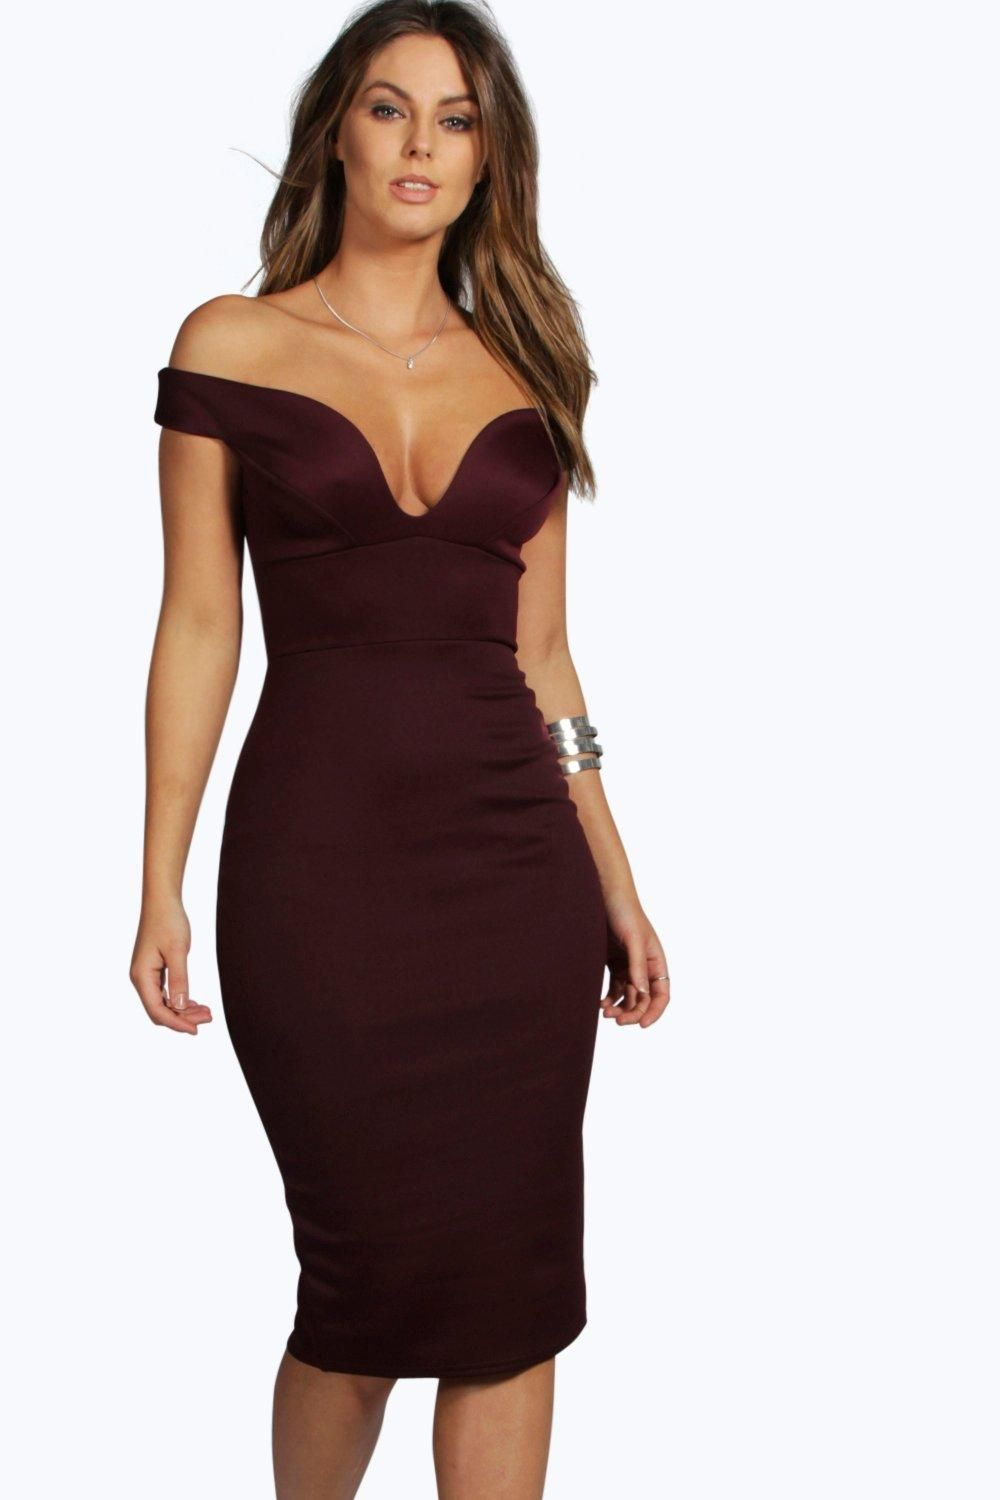 Look knock-out on nights out in figure-skimming bodycon fits 06d2a82f02f7